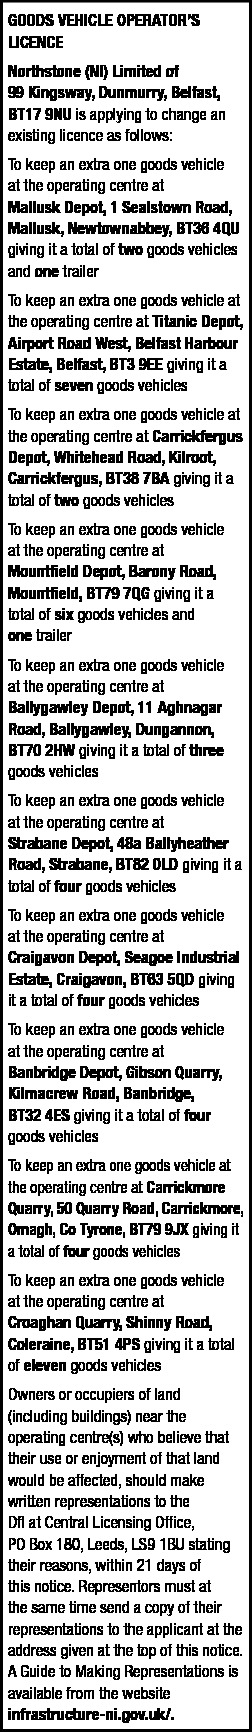 GOODS VEHICLE LICENCE